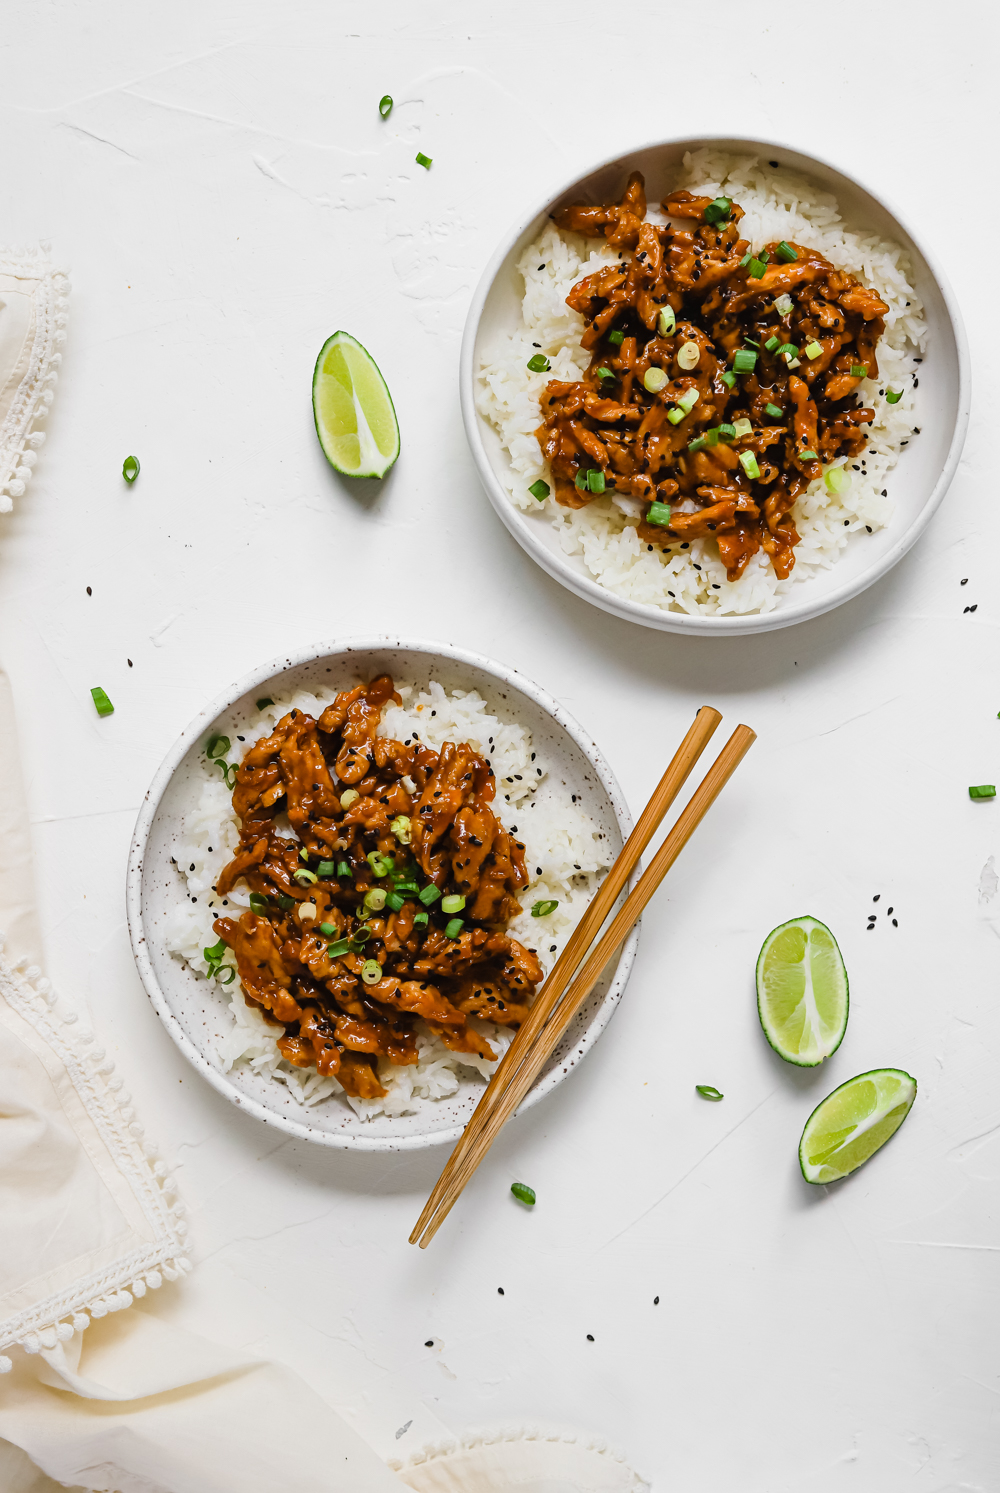 Two big bowls of teriyaki soy curls on a bed of rice.